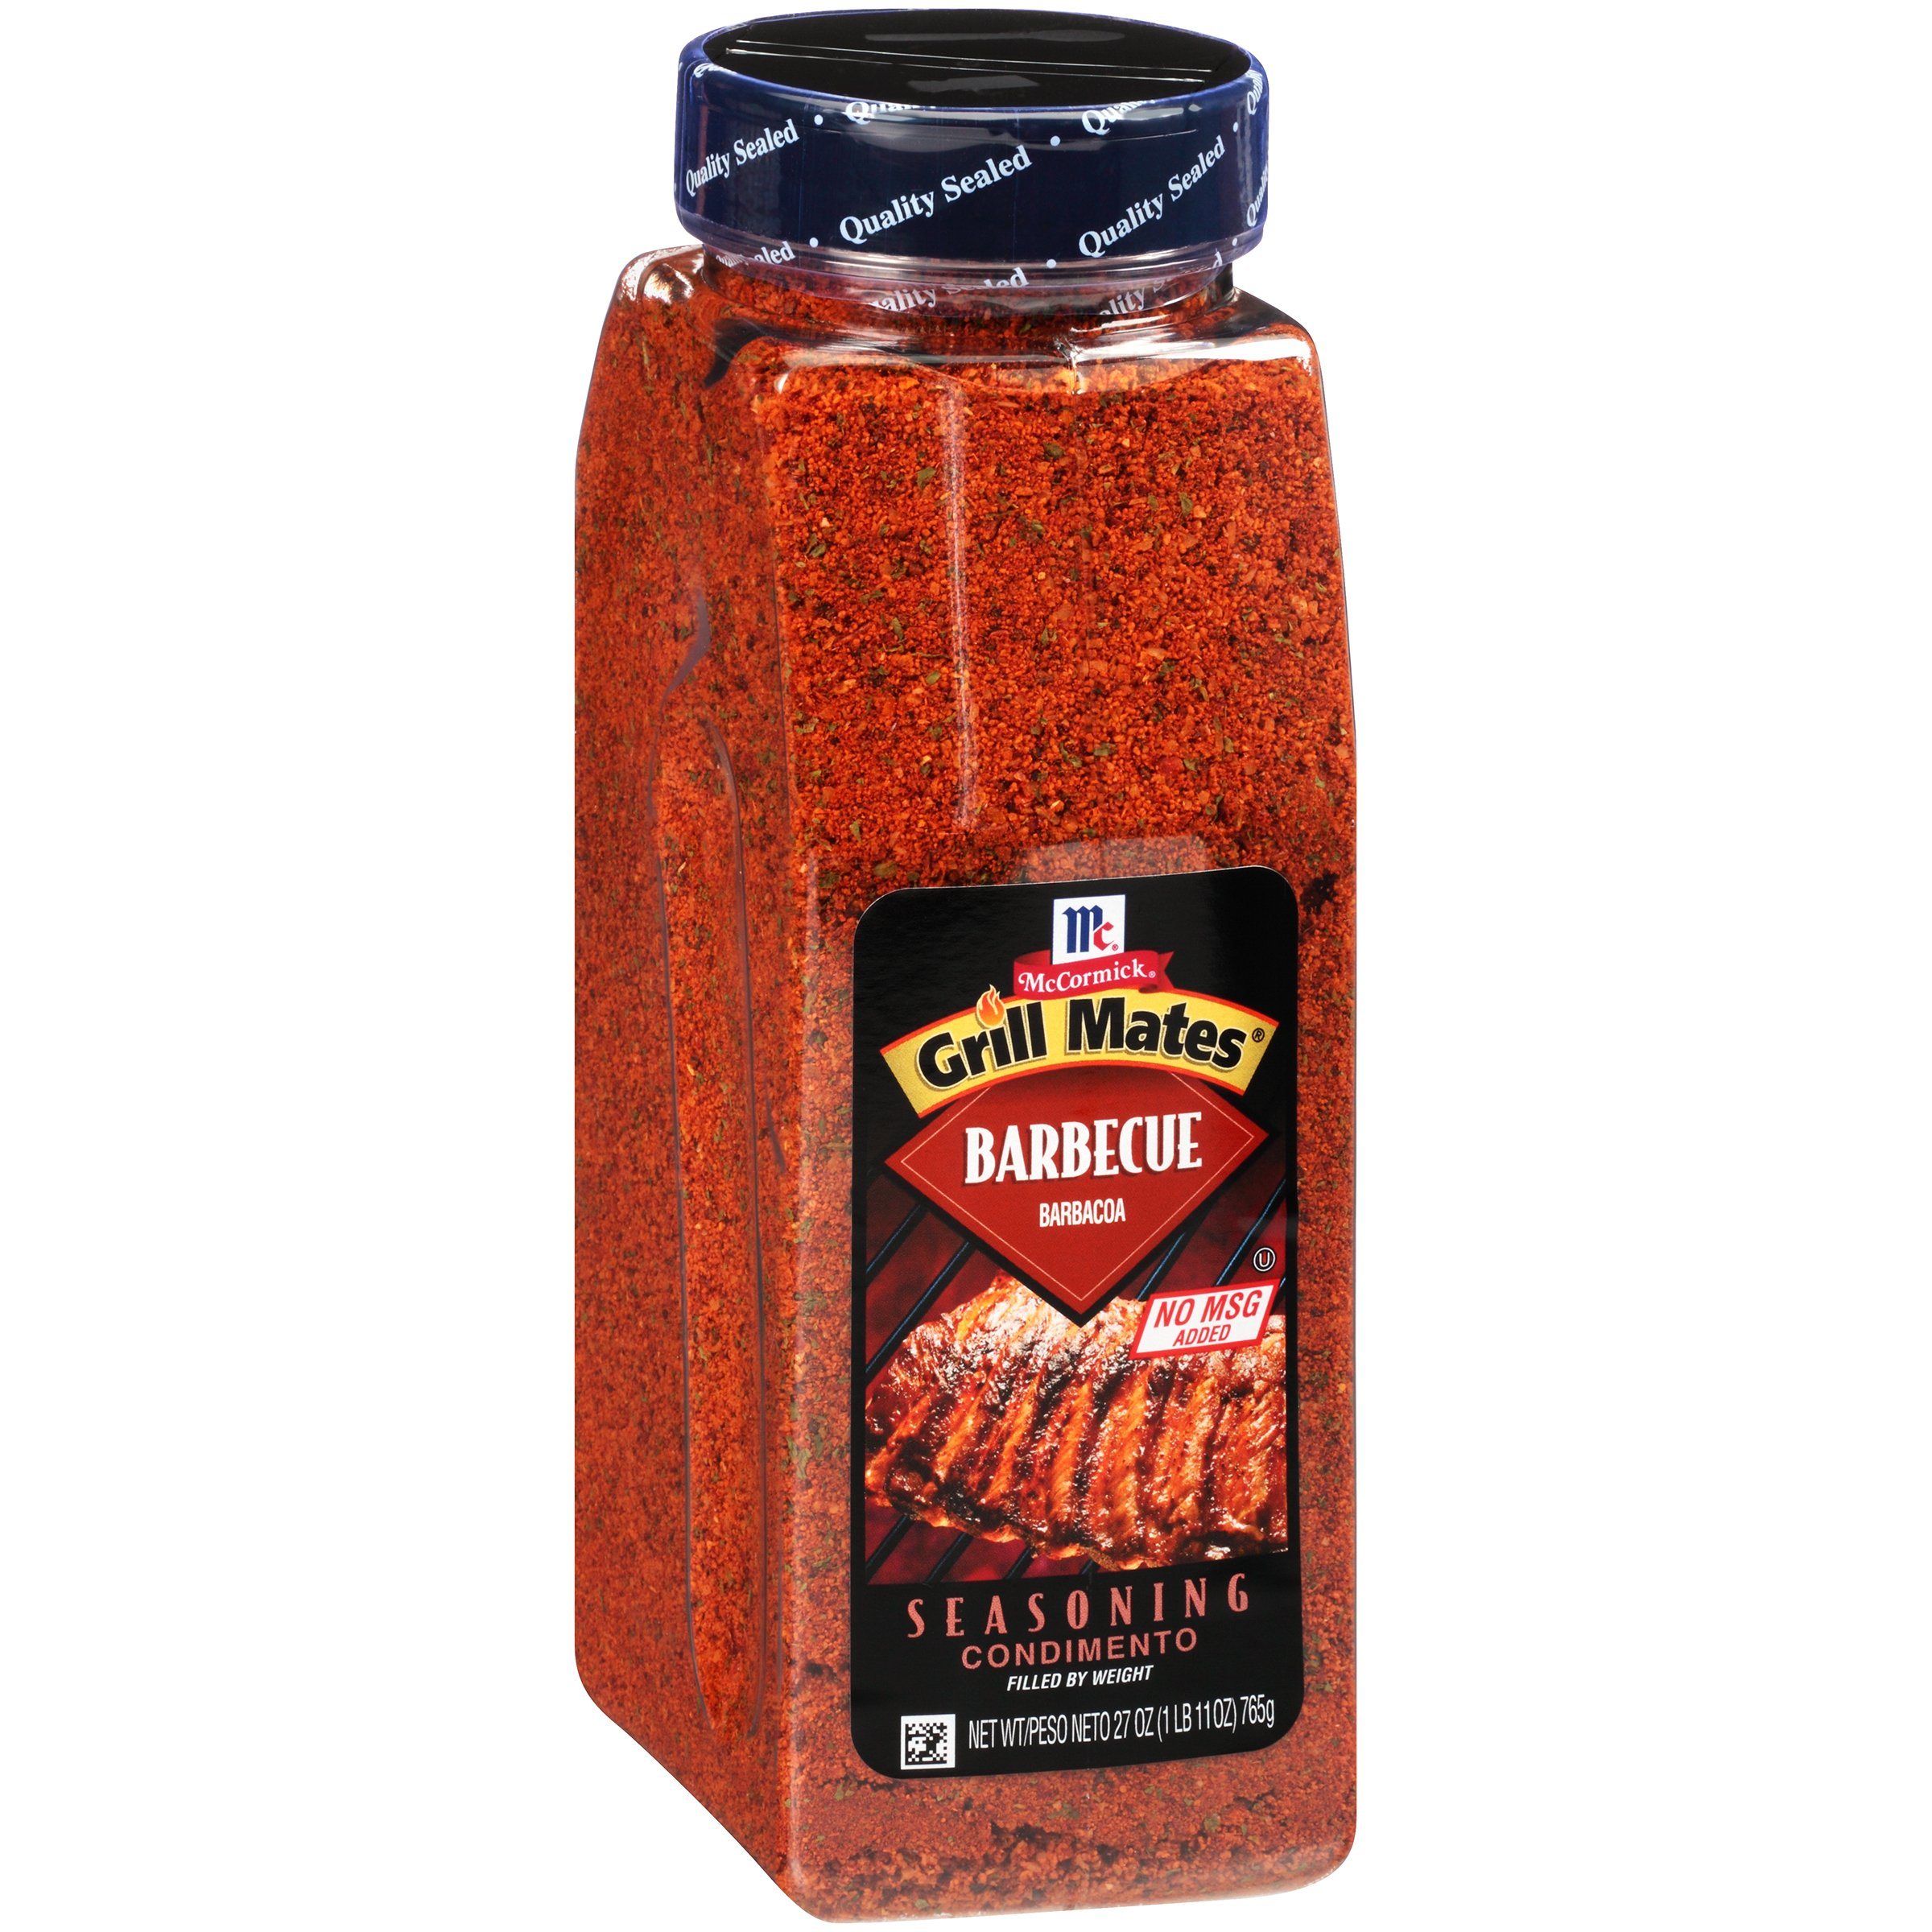 McCormick Grill Mates Barbecue Seasoning, 27 Ounce